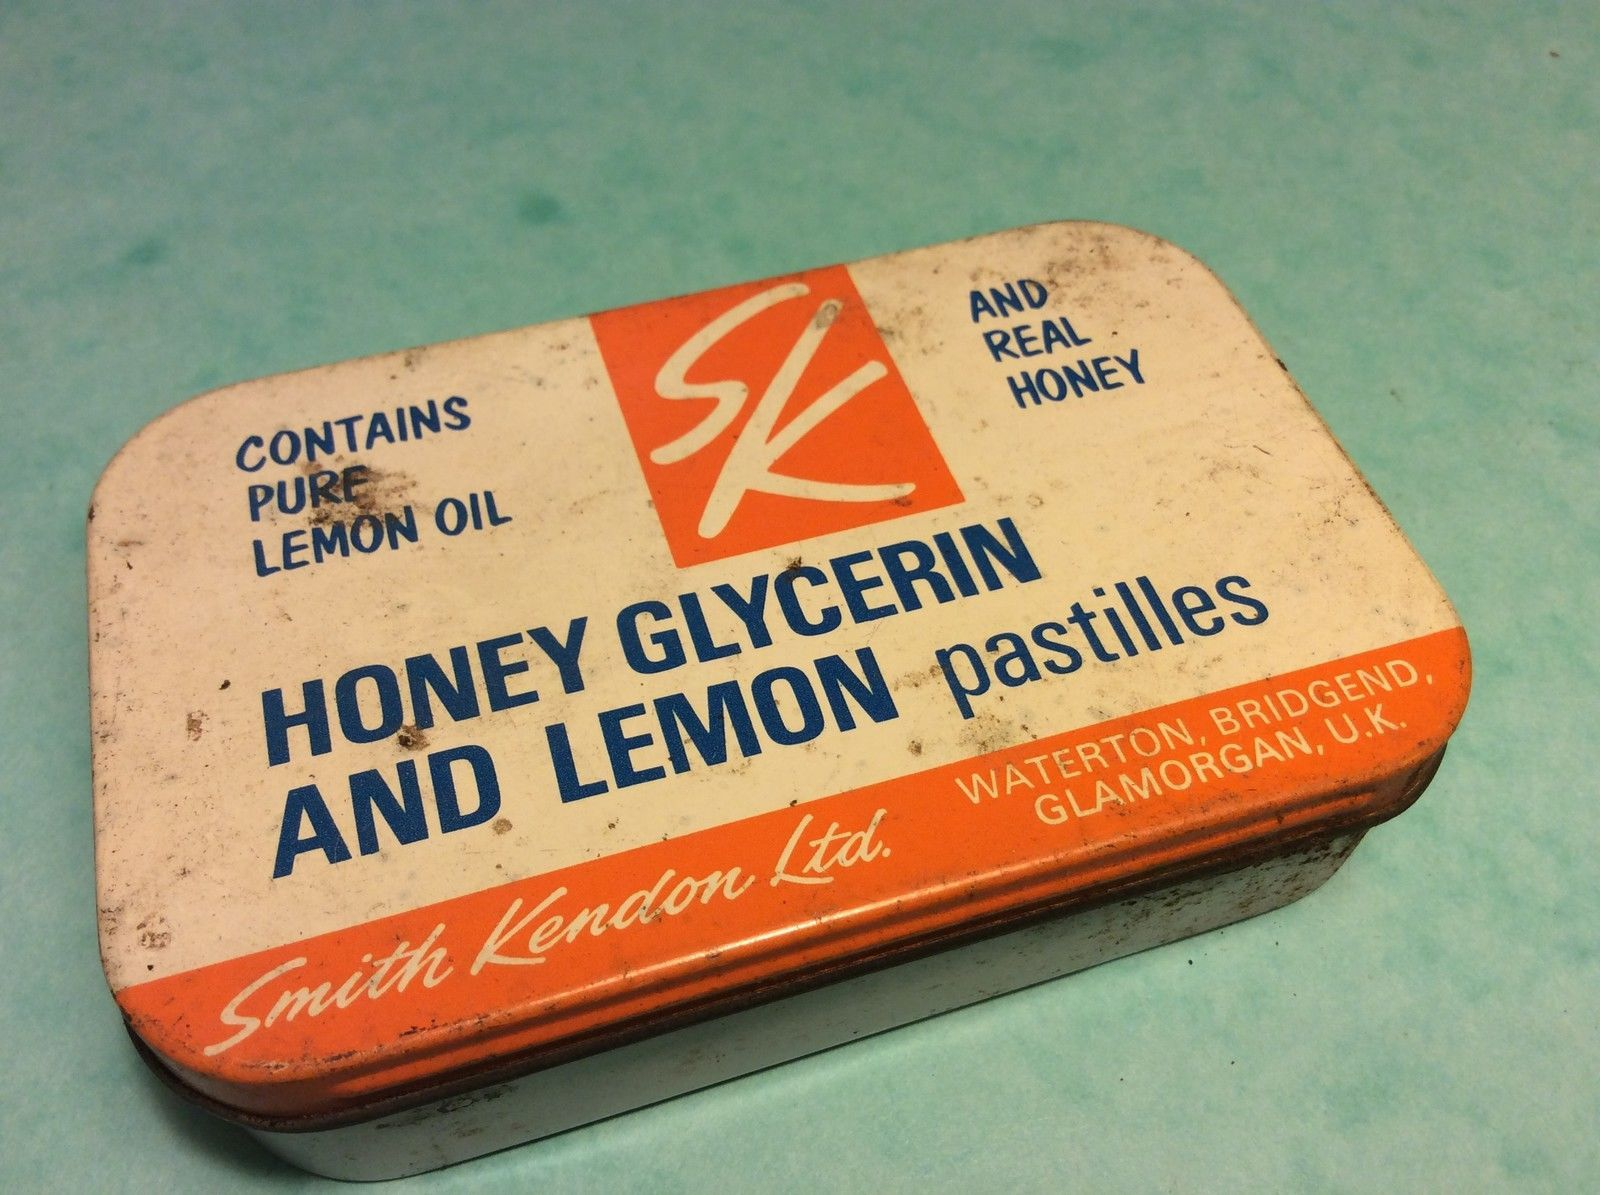 Old Tin Honey Glycerin And Lemon Pastilles Smith Kendon Ltd Glamorgan Uk Advertising Collectibles Glycerin Pure Oils